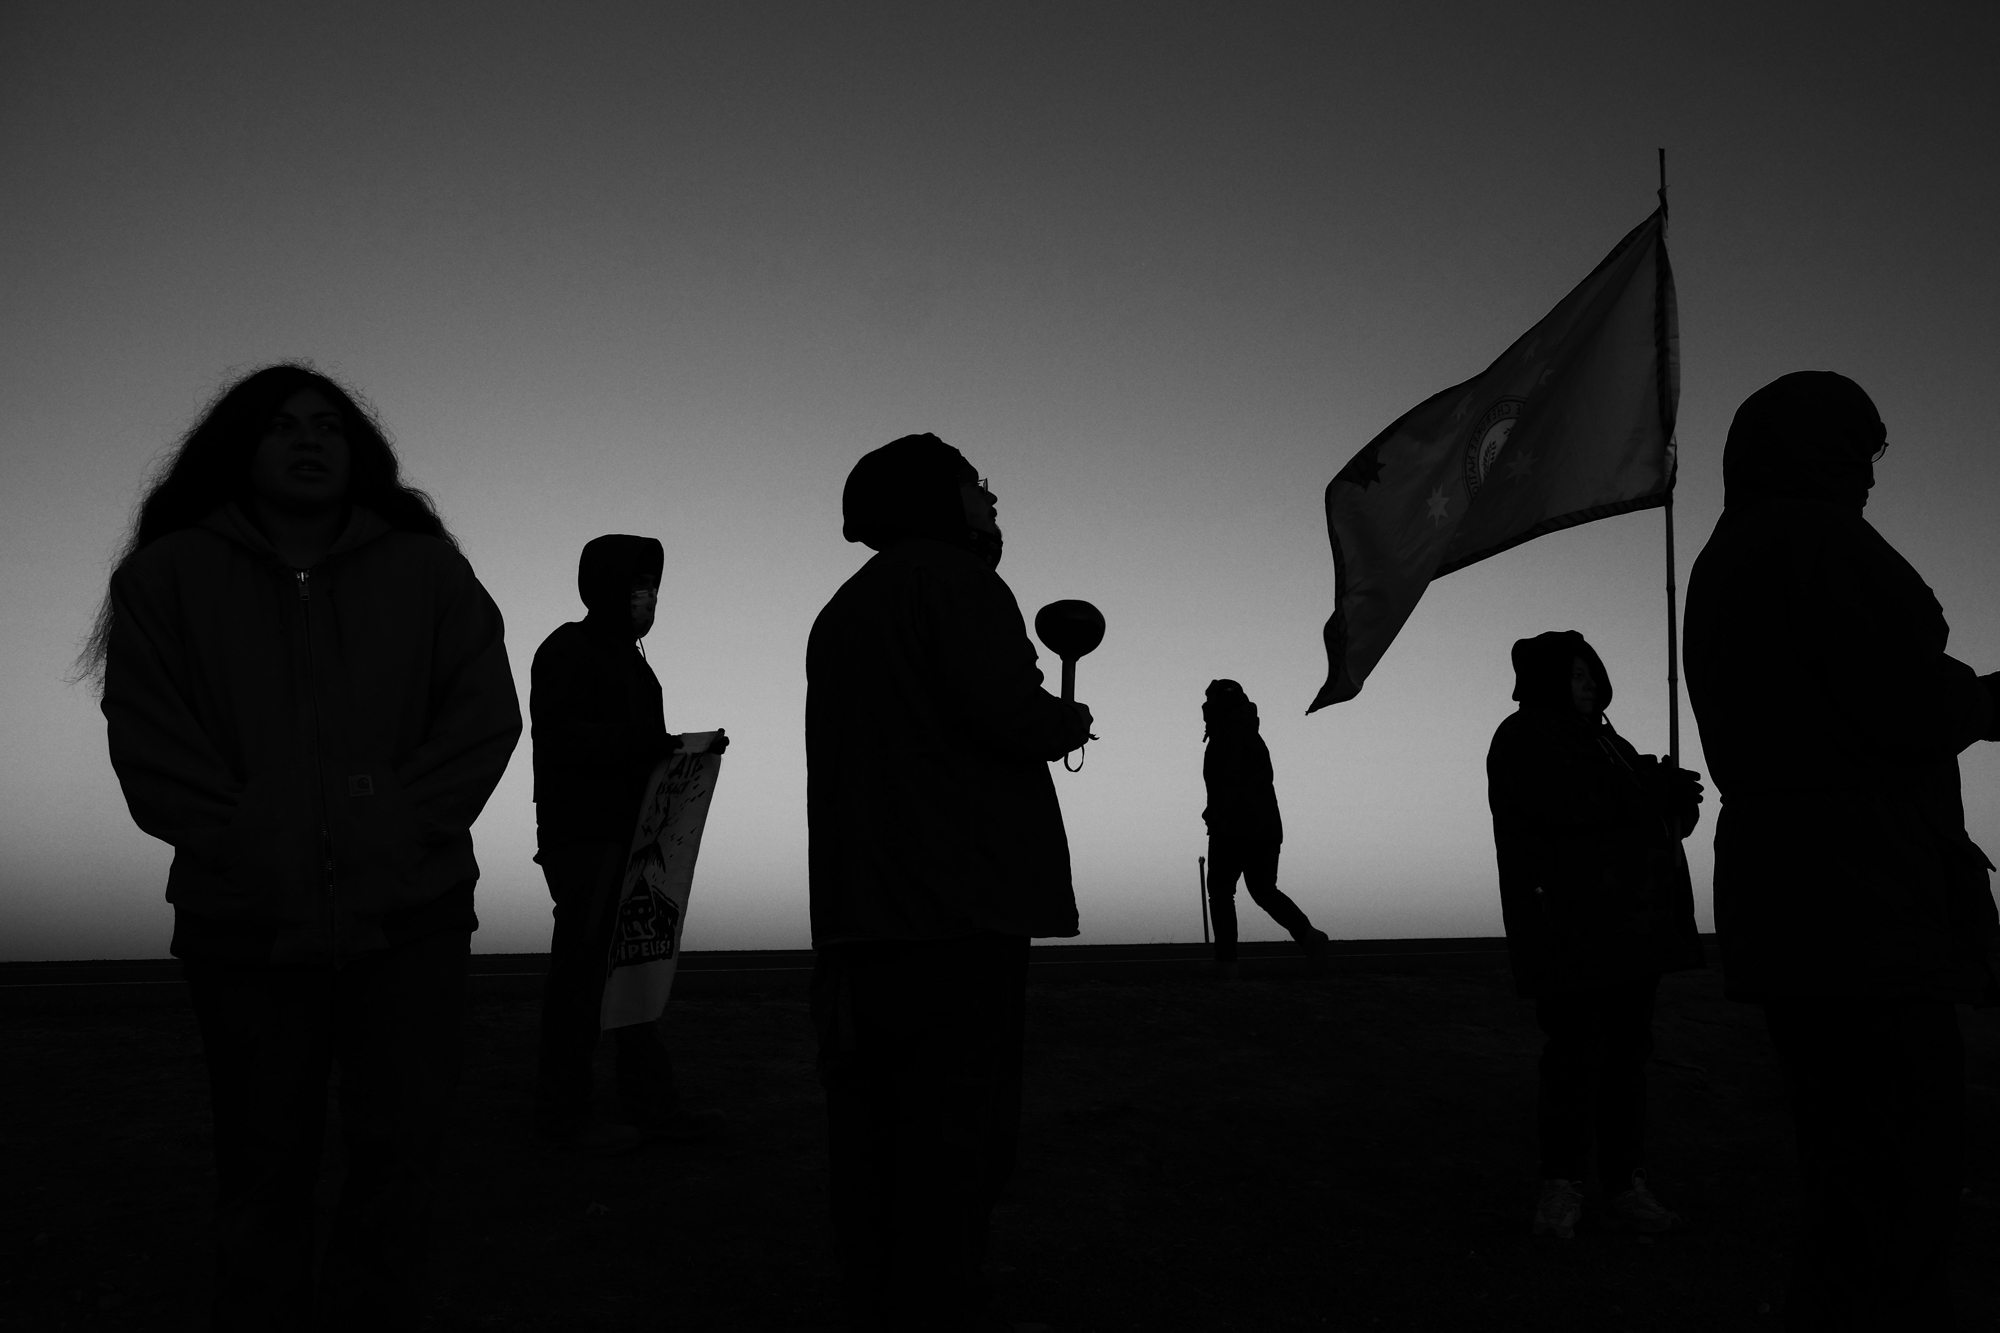 Members of Sociey of Native Nations and Big Bend citizens gather in the morning light near the border of Mexico to protest the Trans-Pecos Pipeline running across the Rio Grande.